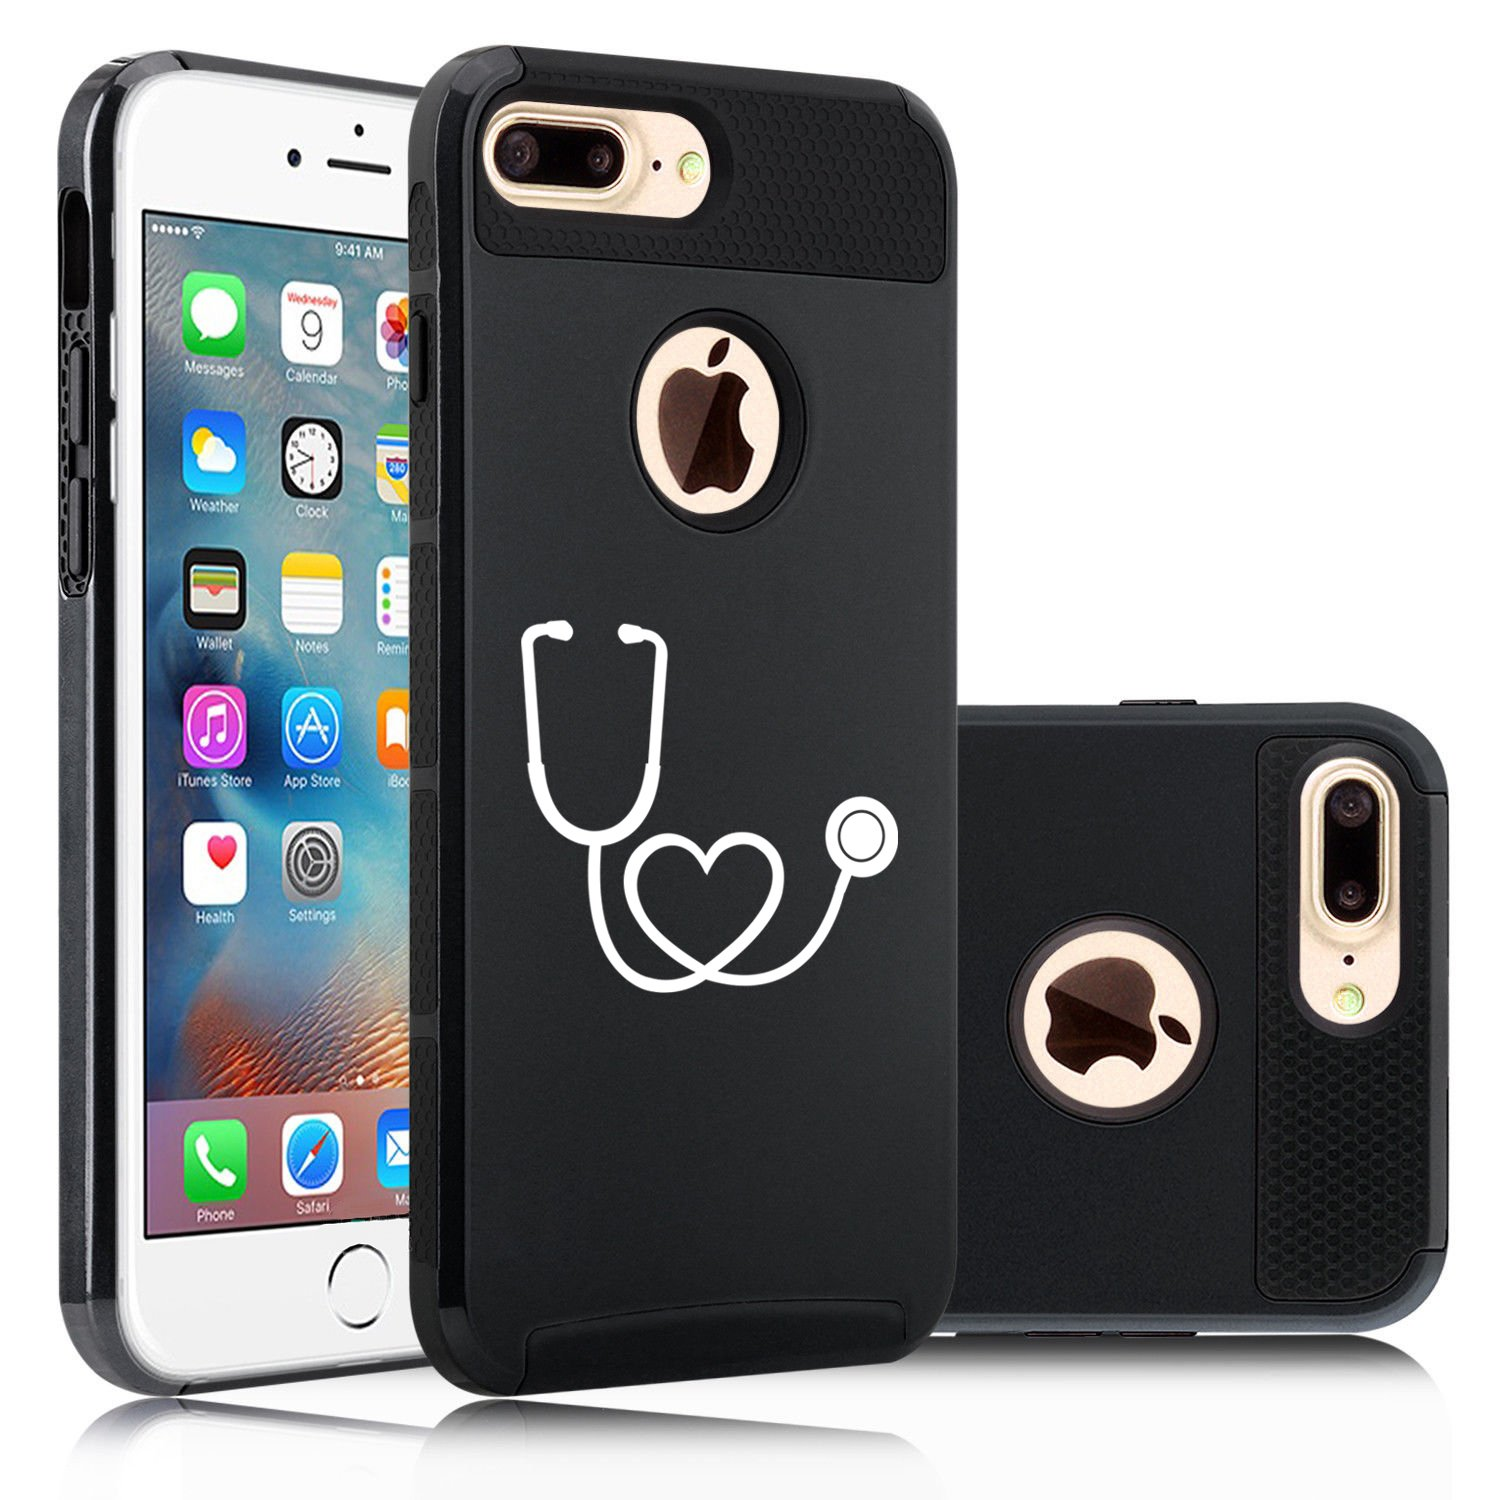 Amazon.com: iPhone de Apple (7 Plus) Impacto duro Soft Case ...